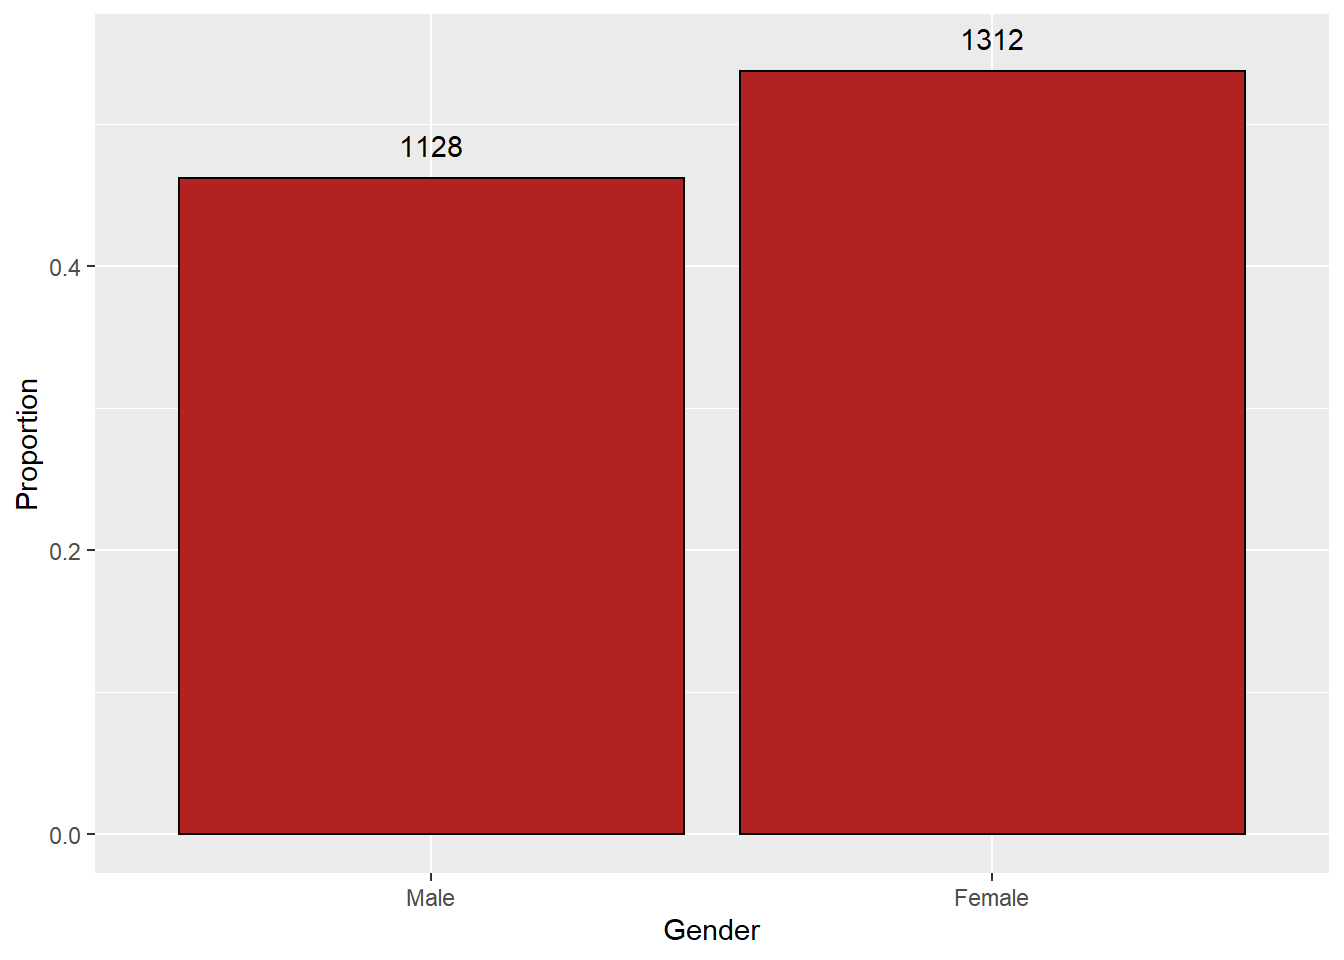 Bar plot of Gender